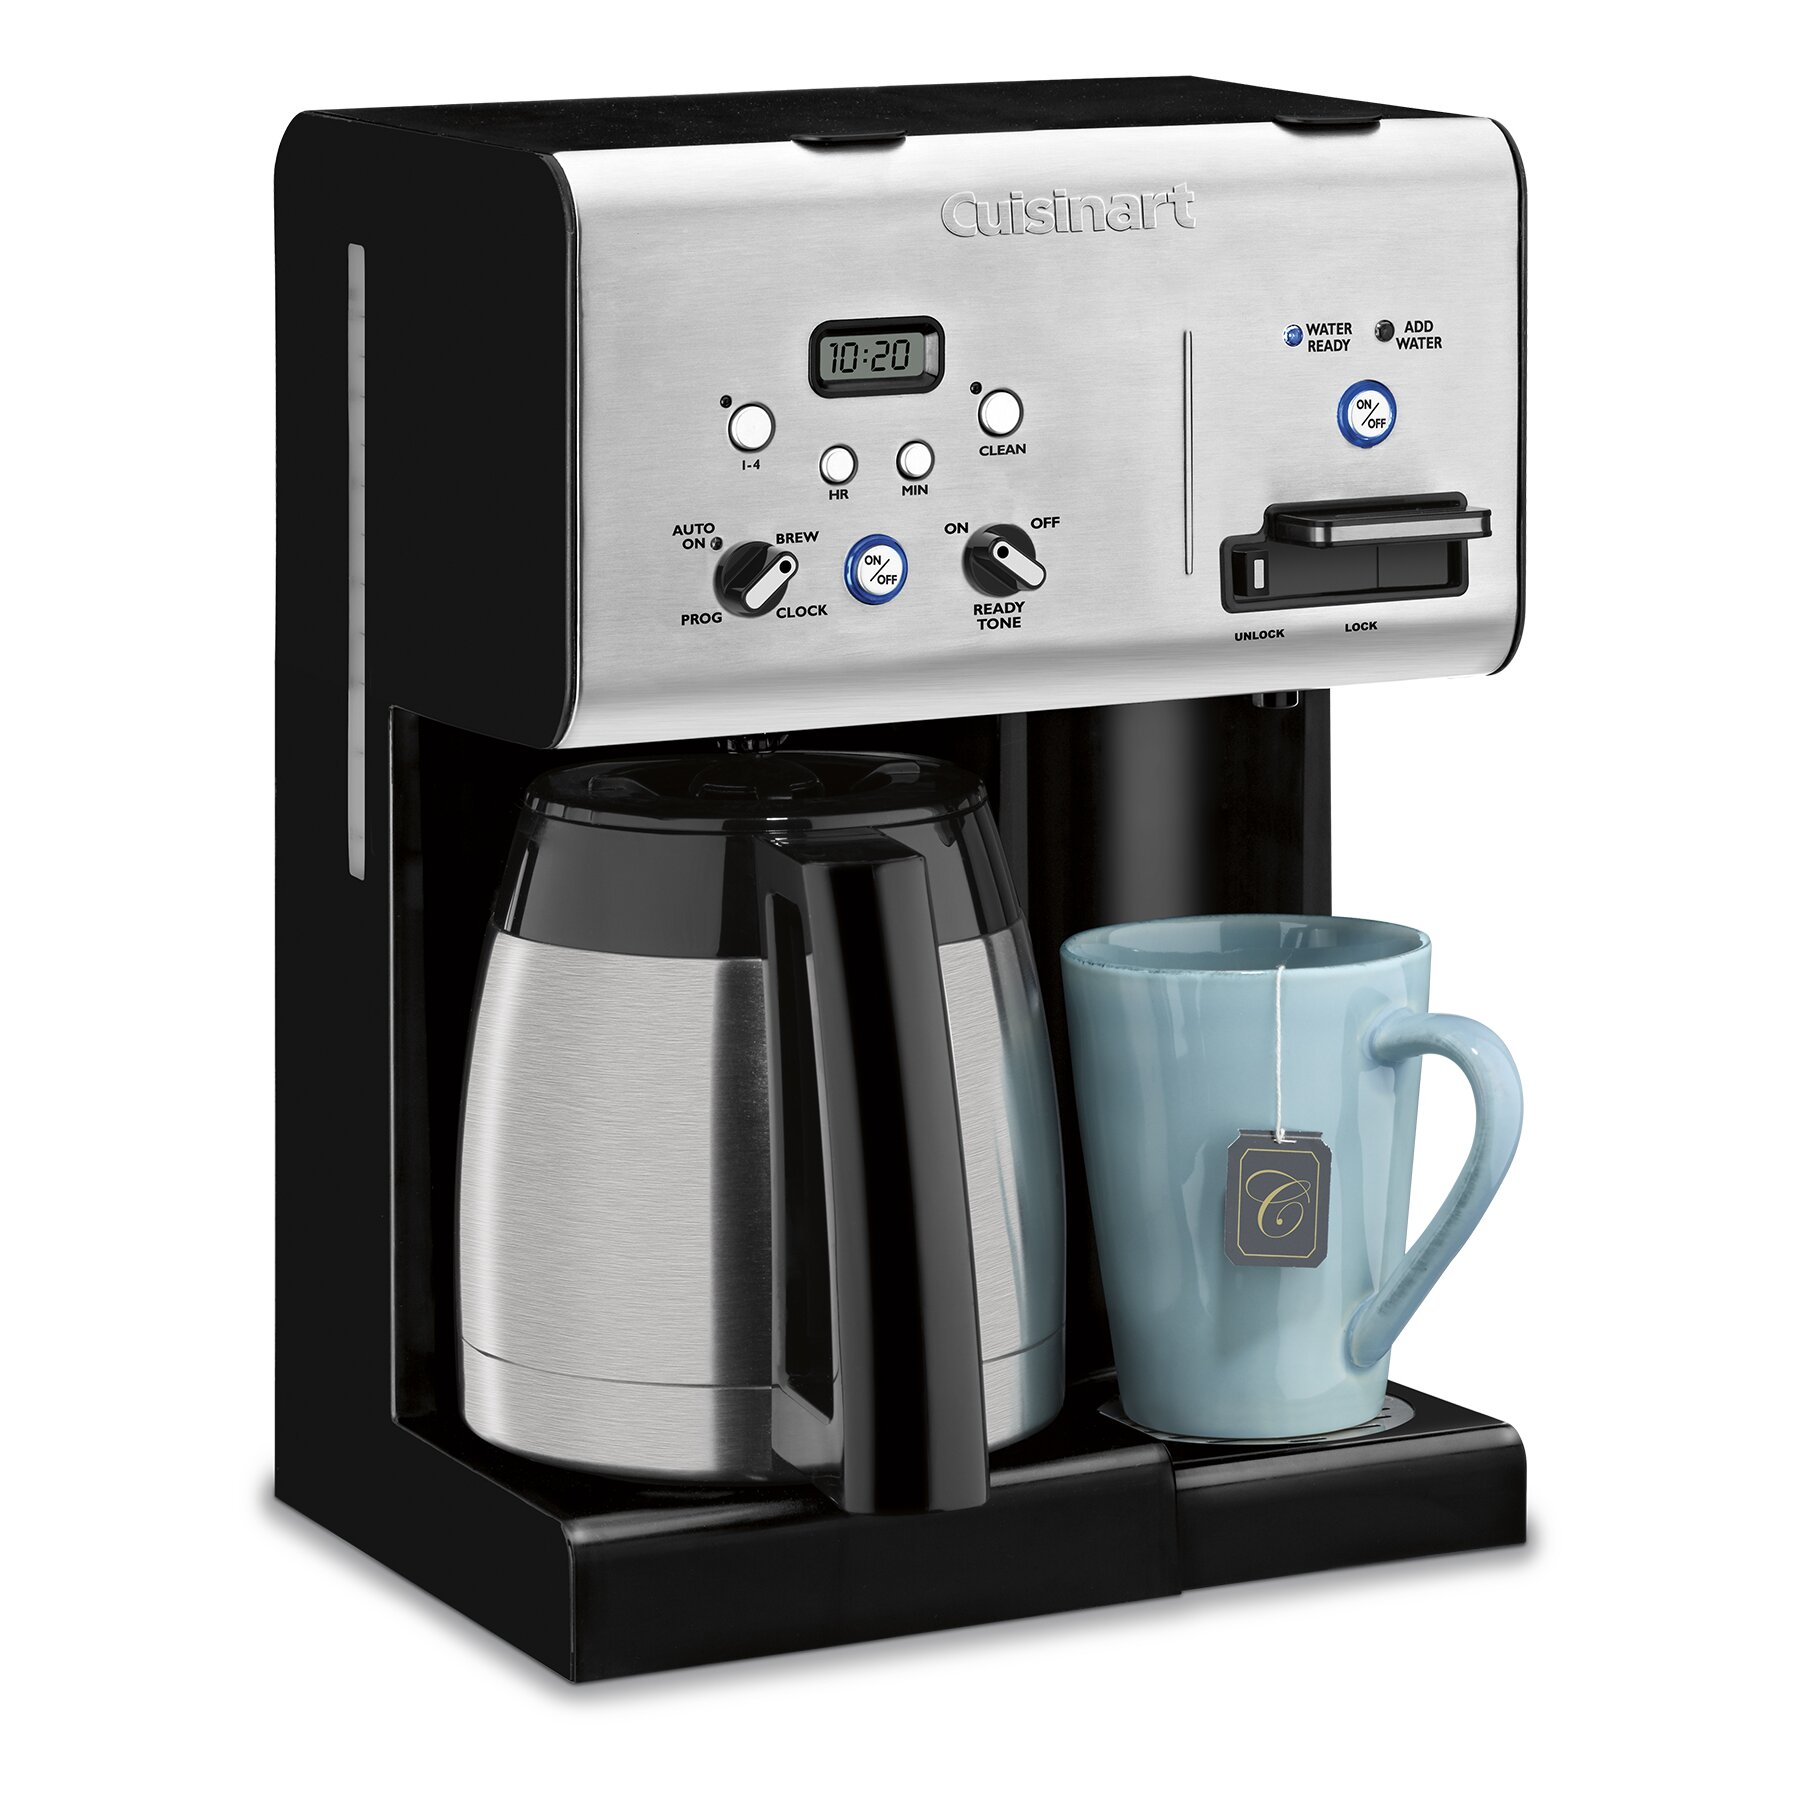 Cuisinart 10 Cup Thermal Programmable Coffee Maker  : 10 Cup Thermal Programmable Coffee Maker CHW 14 from www.wayfair.com size 1800 x 1800 jpeg 315kB